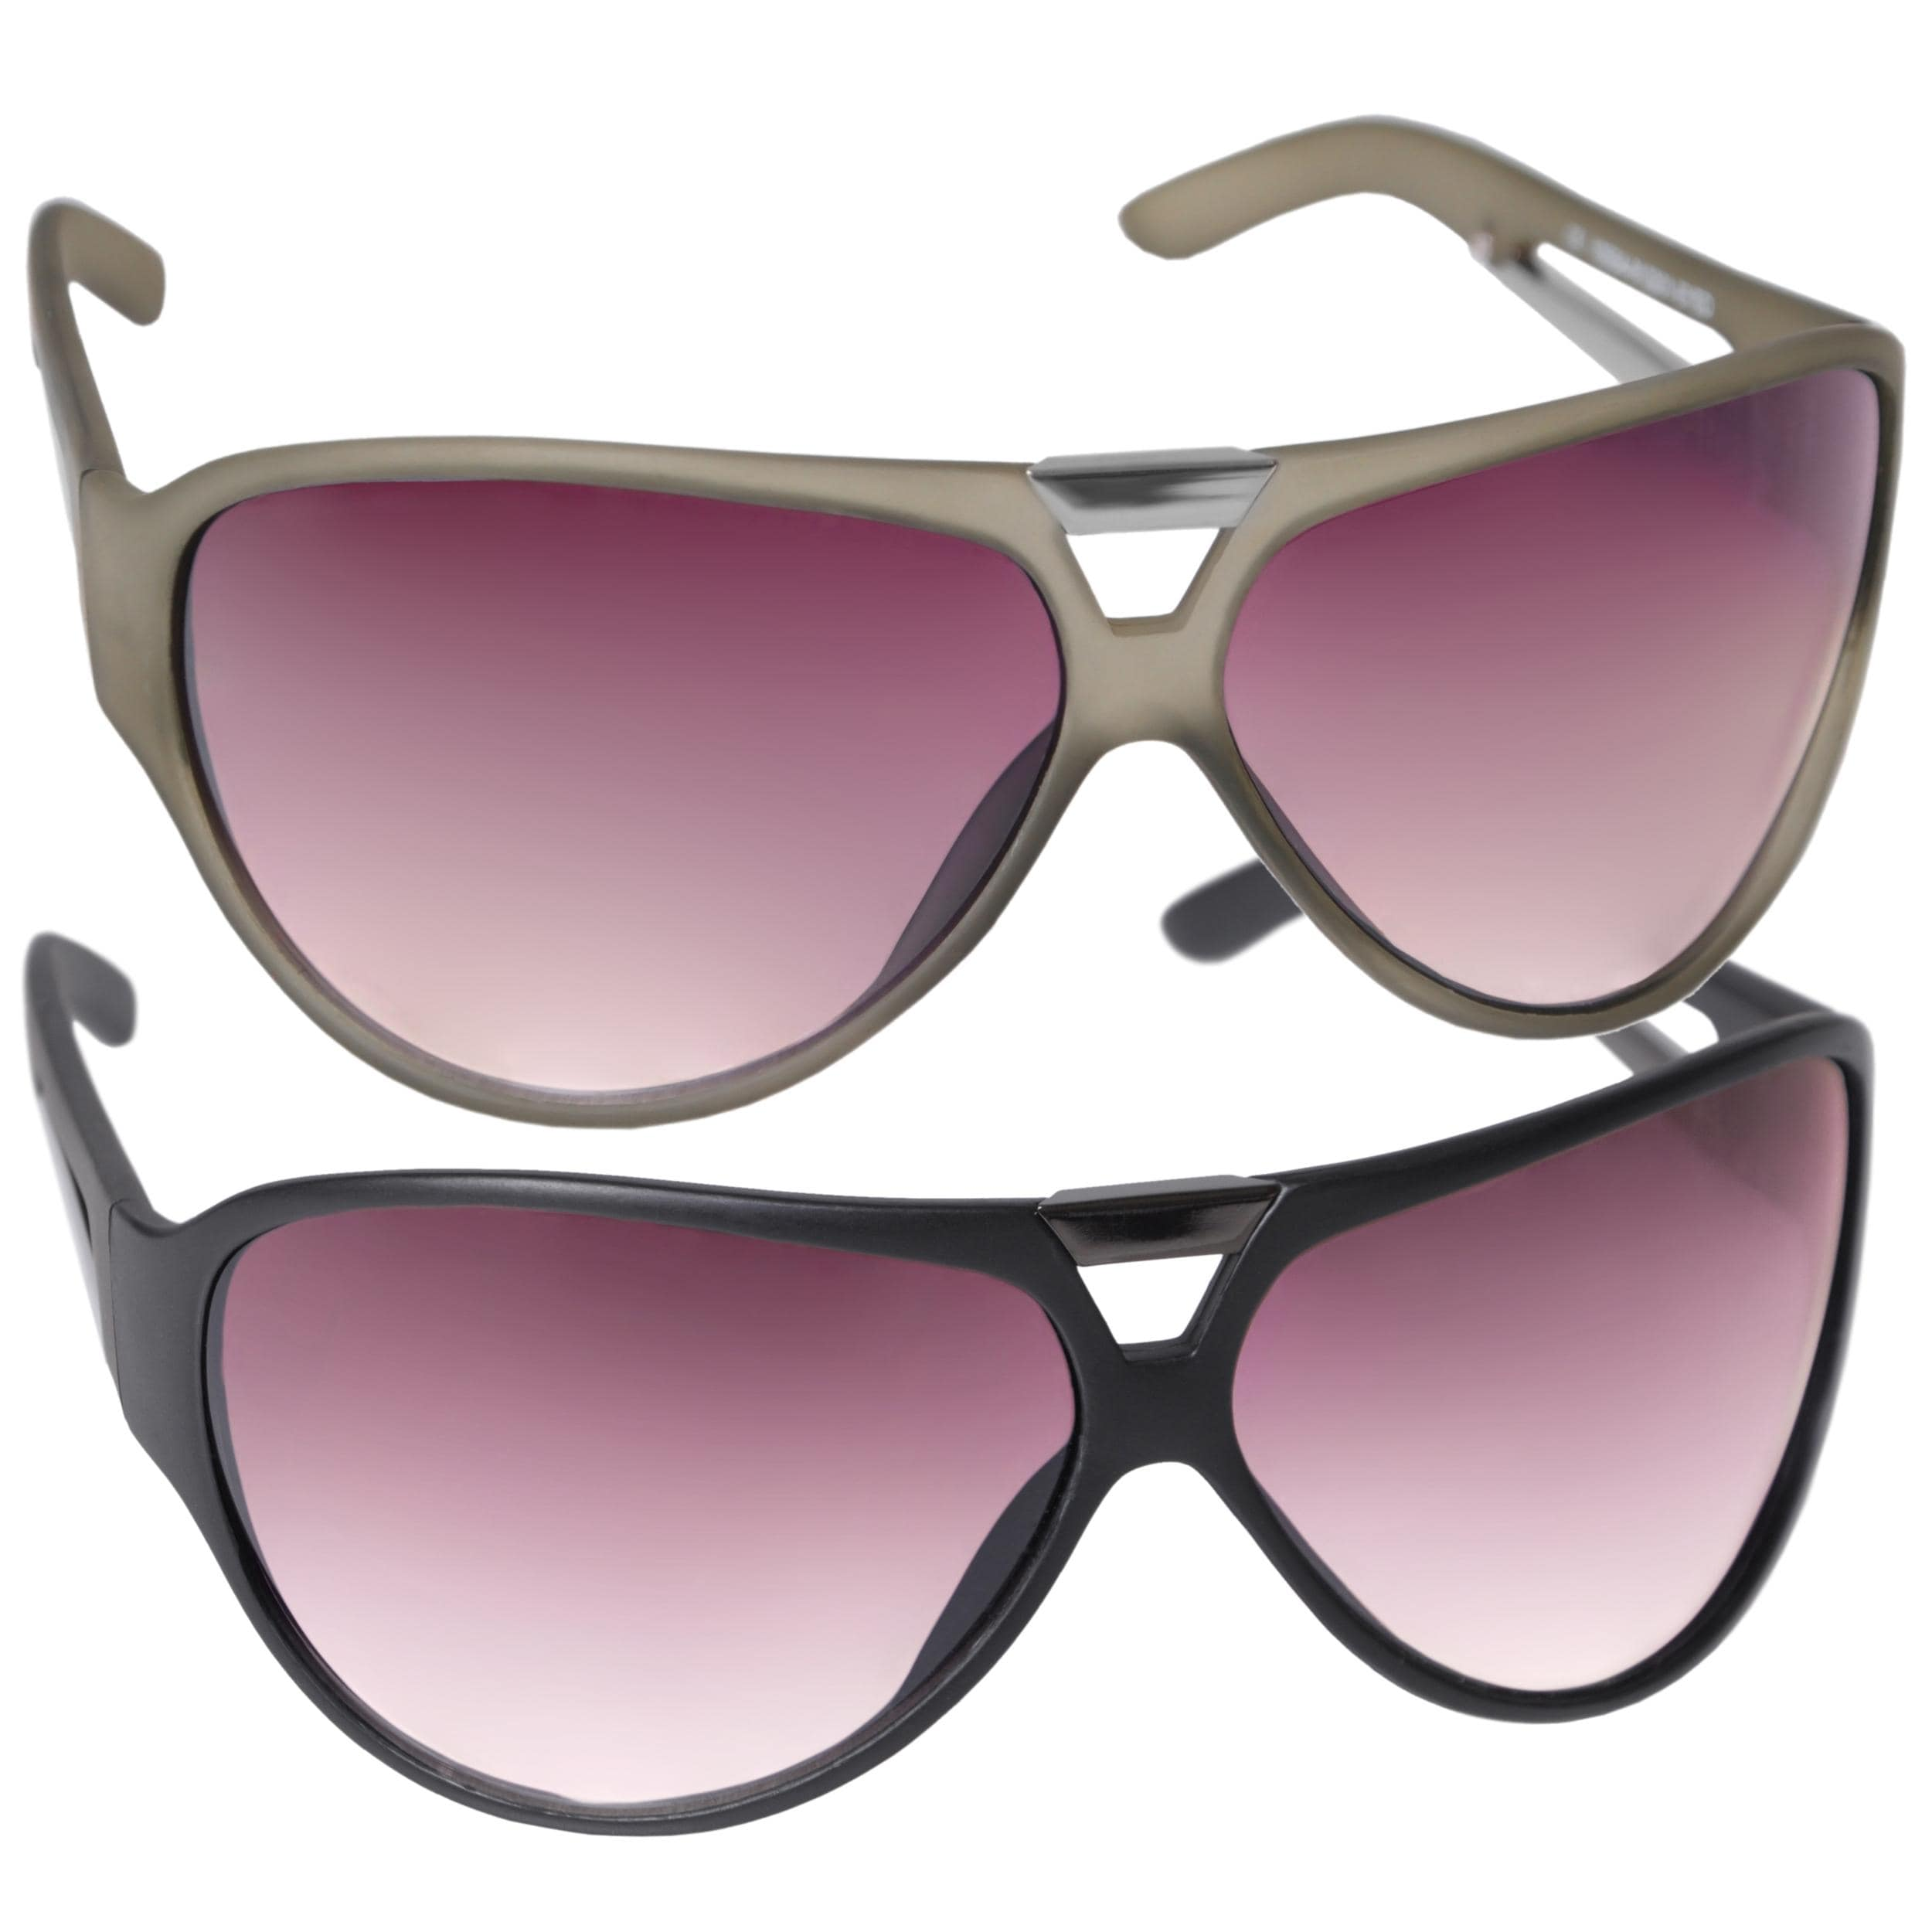 Adi Designs Women's Plastic Aviator Sunglasses